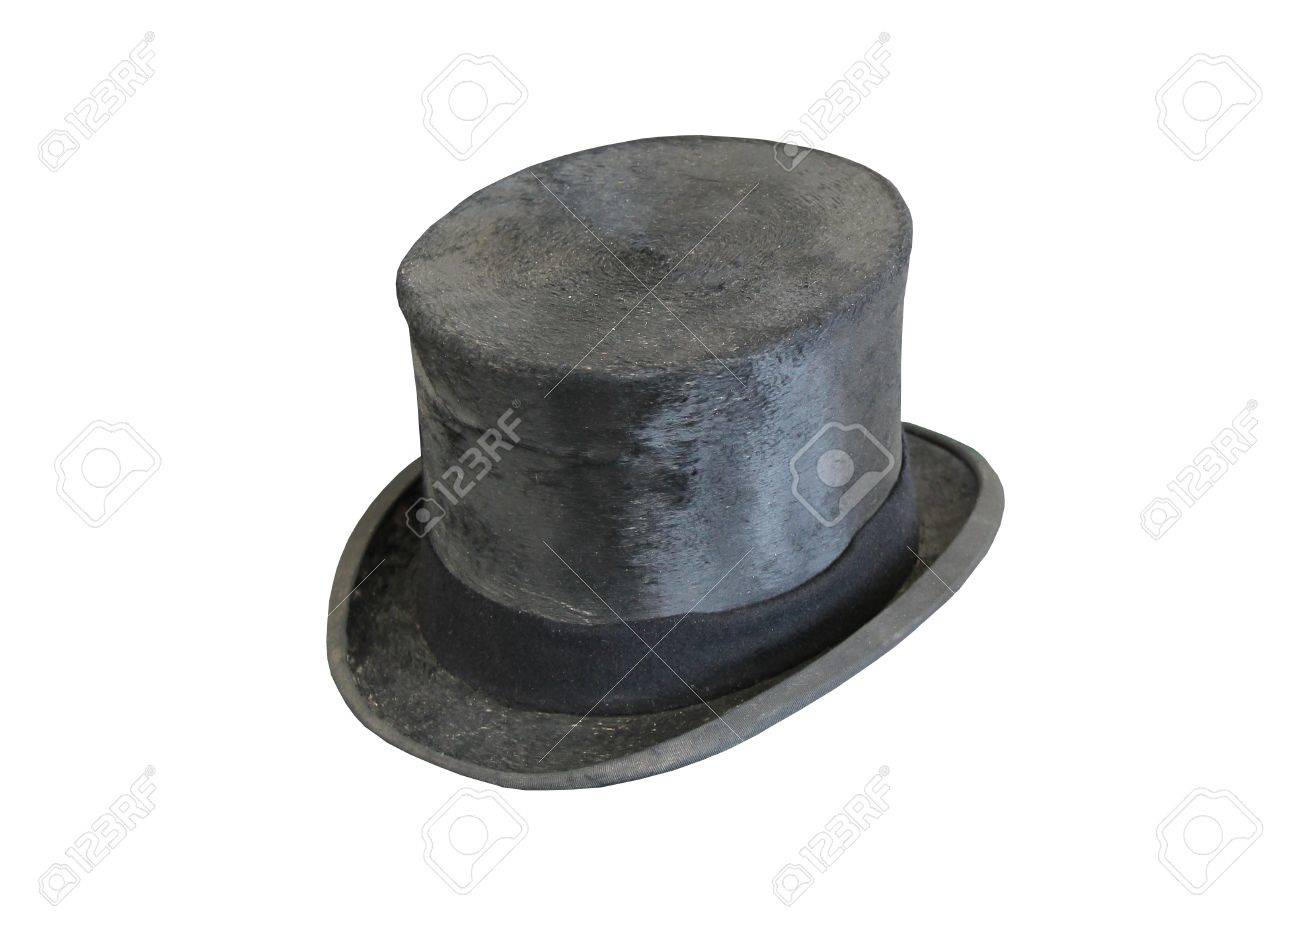 A Traditional Old Fashioned Grey Top Hat. Stock Photo - 15171180